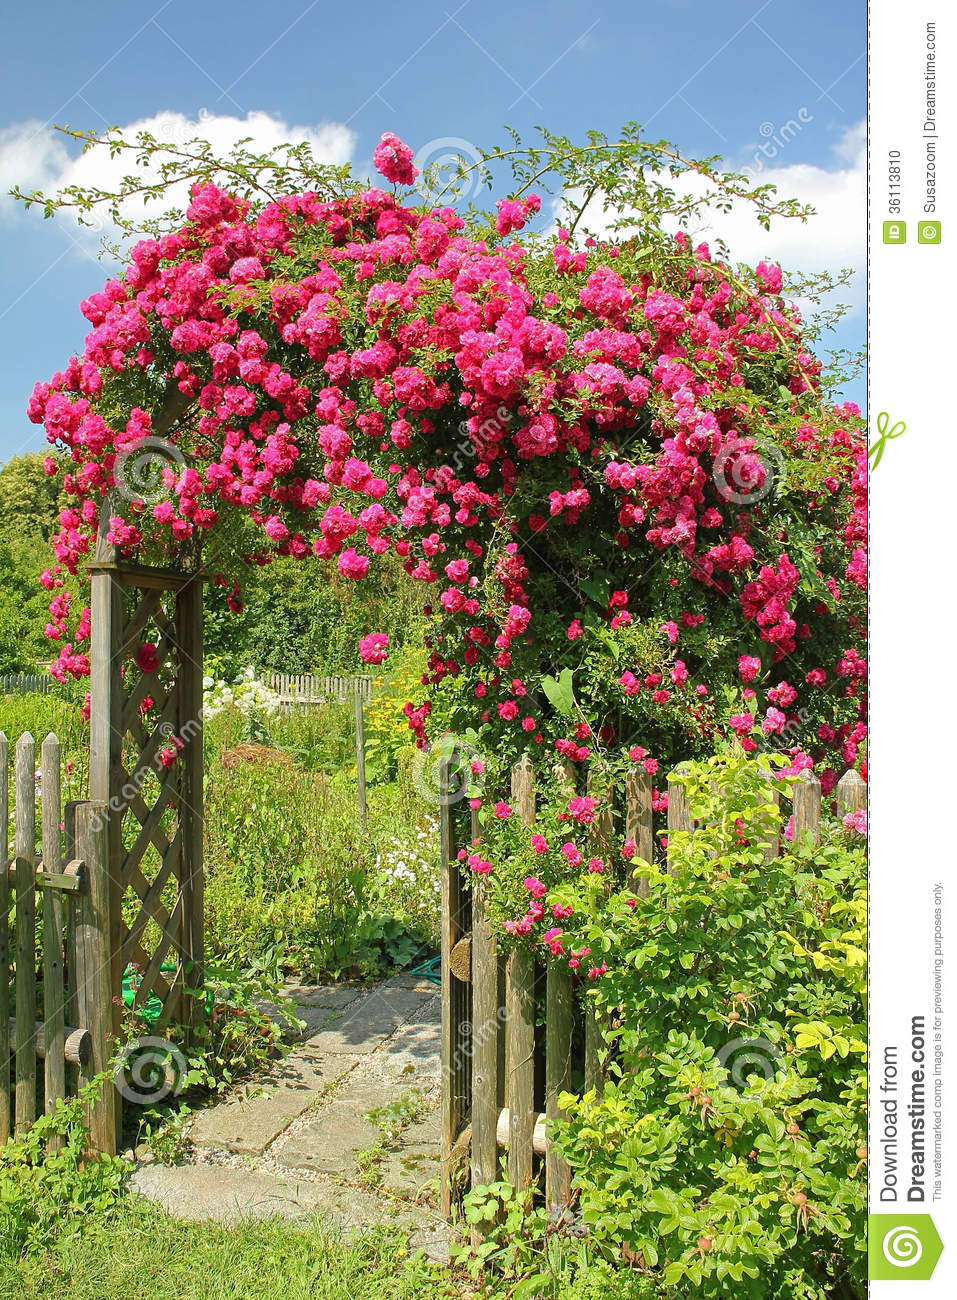 red rambler rose on an arched garden entrance stock photo. Black Bedroom Furniture Sets. Home Design Ideas